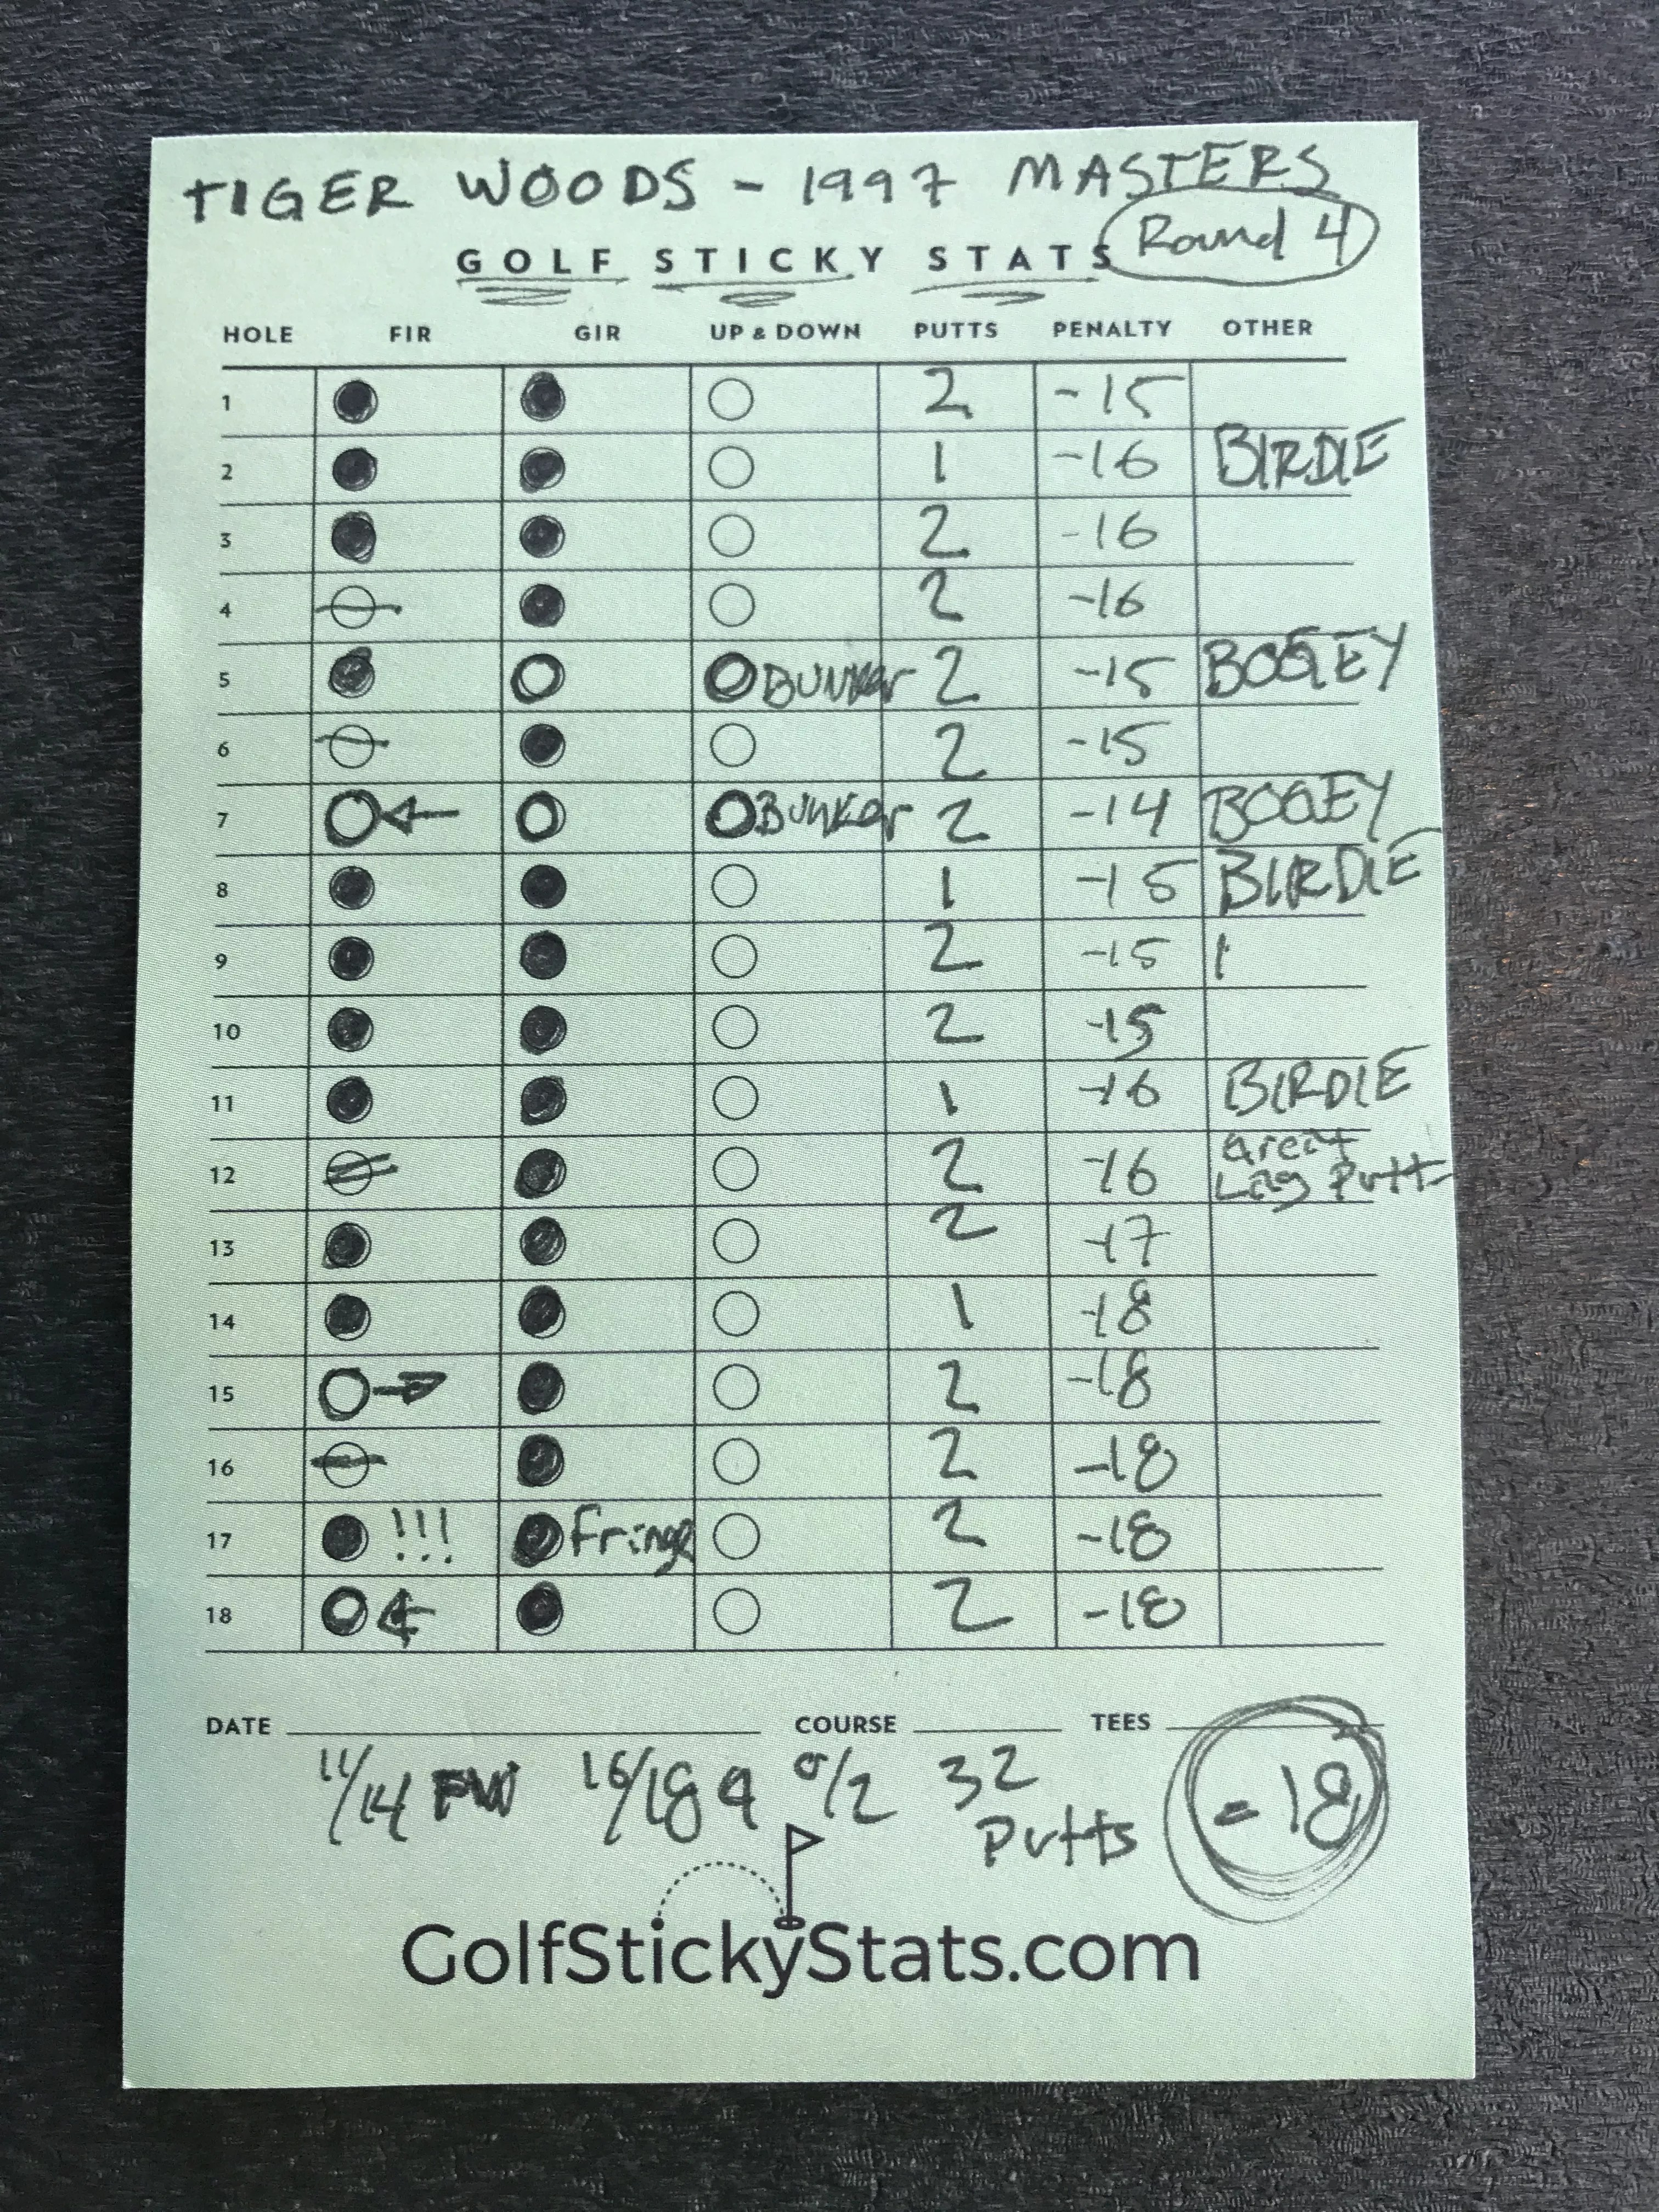 Golf Sticky Stats Pads Help You Track Your Performance